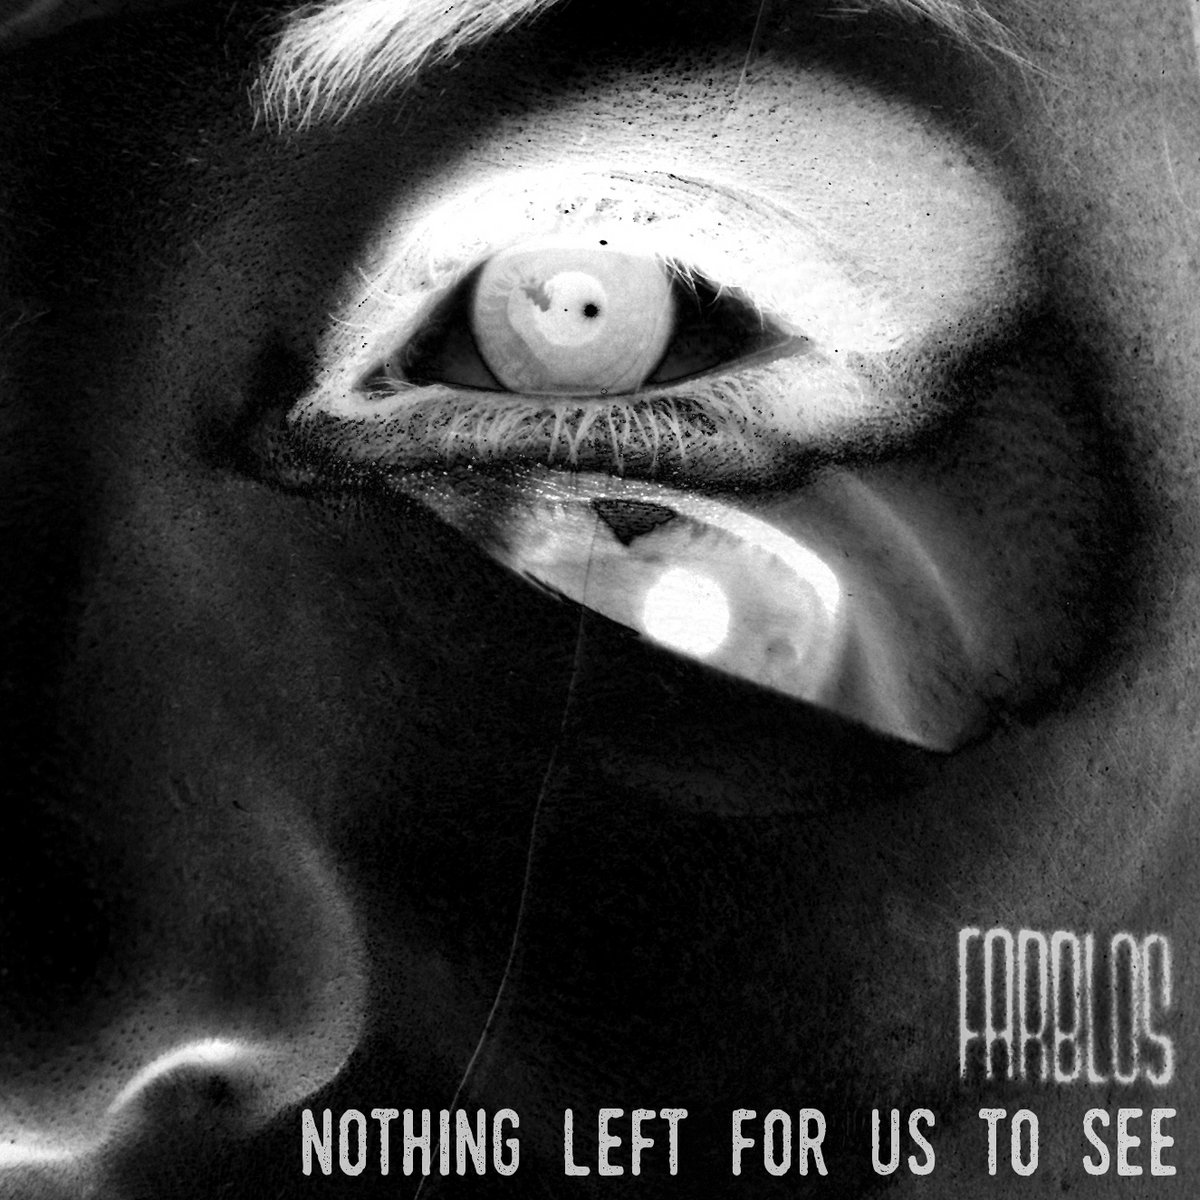 Nothing left for us to see | Farblos